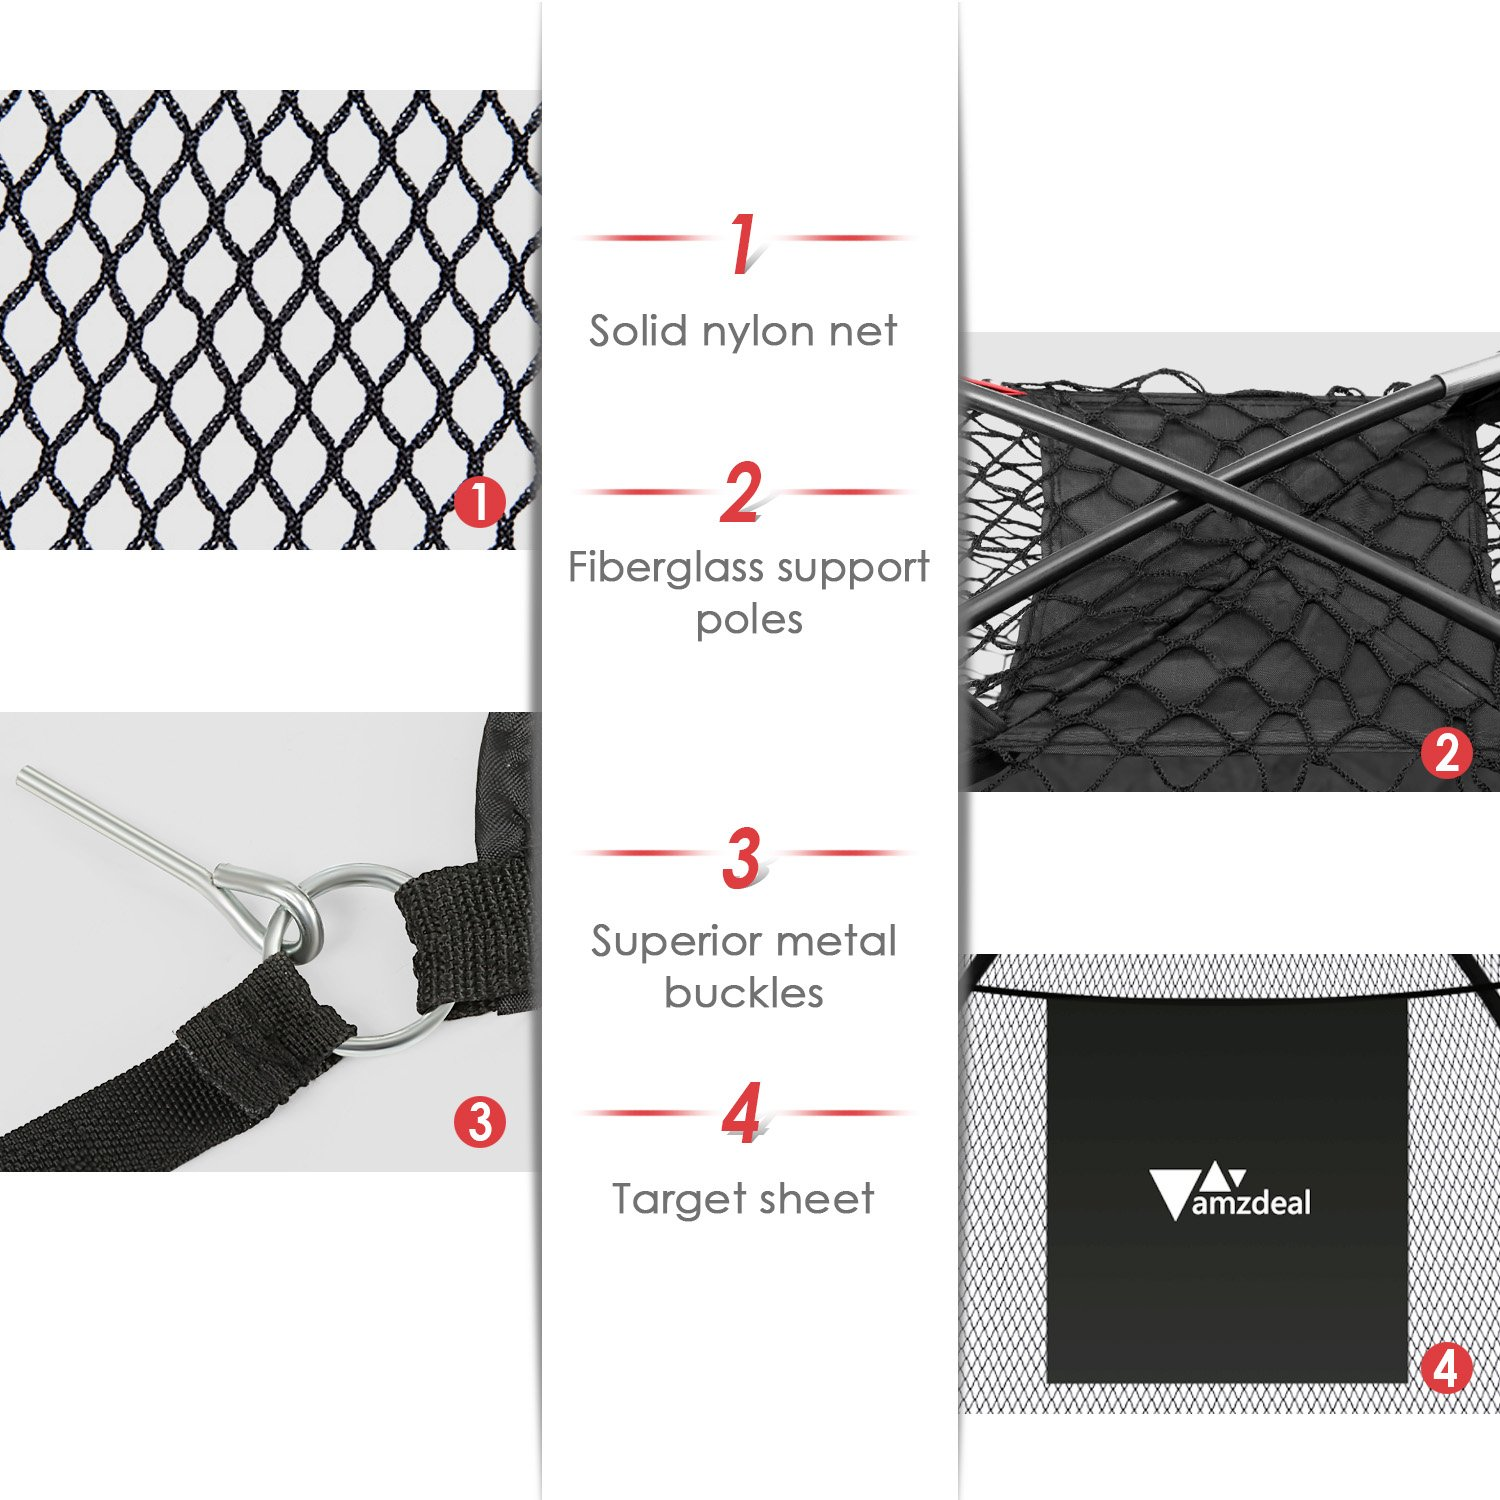 Amazon.com : Amzdeal Golf Practice Net Golf Driving Hitting Net for Backyard Indoors Outdoors Golf Cage Trainging Aids with Target Sheet : Sports & Outdoors